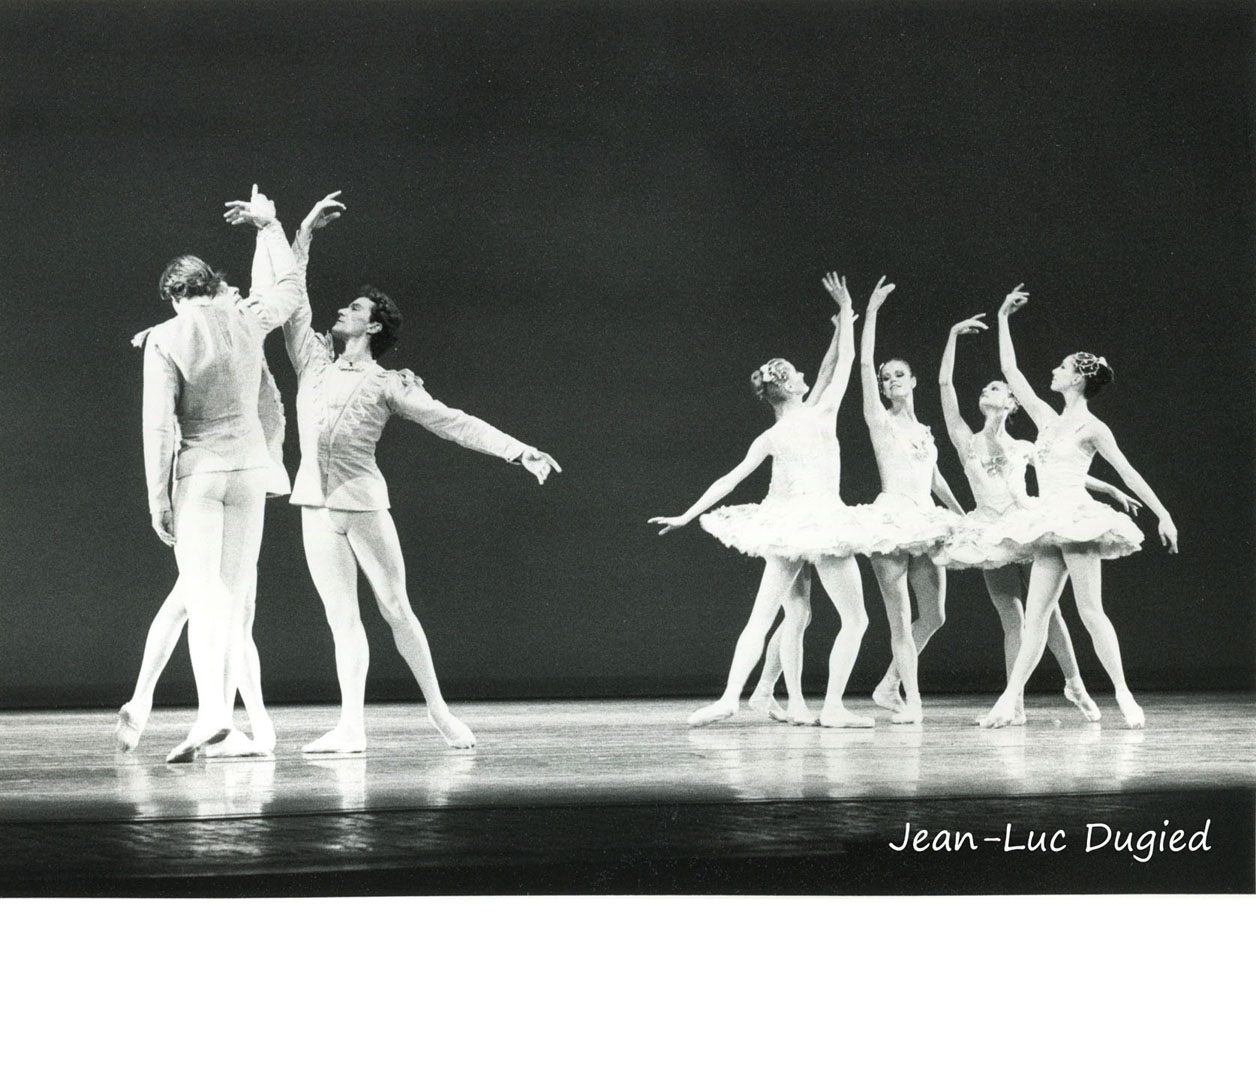 14 New York city ballet - divertissement n°15 - chor. Balanchine - 1983